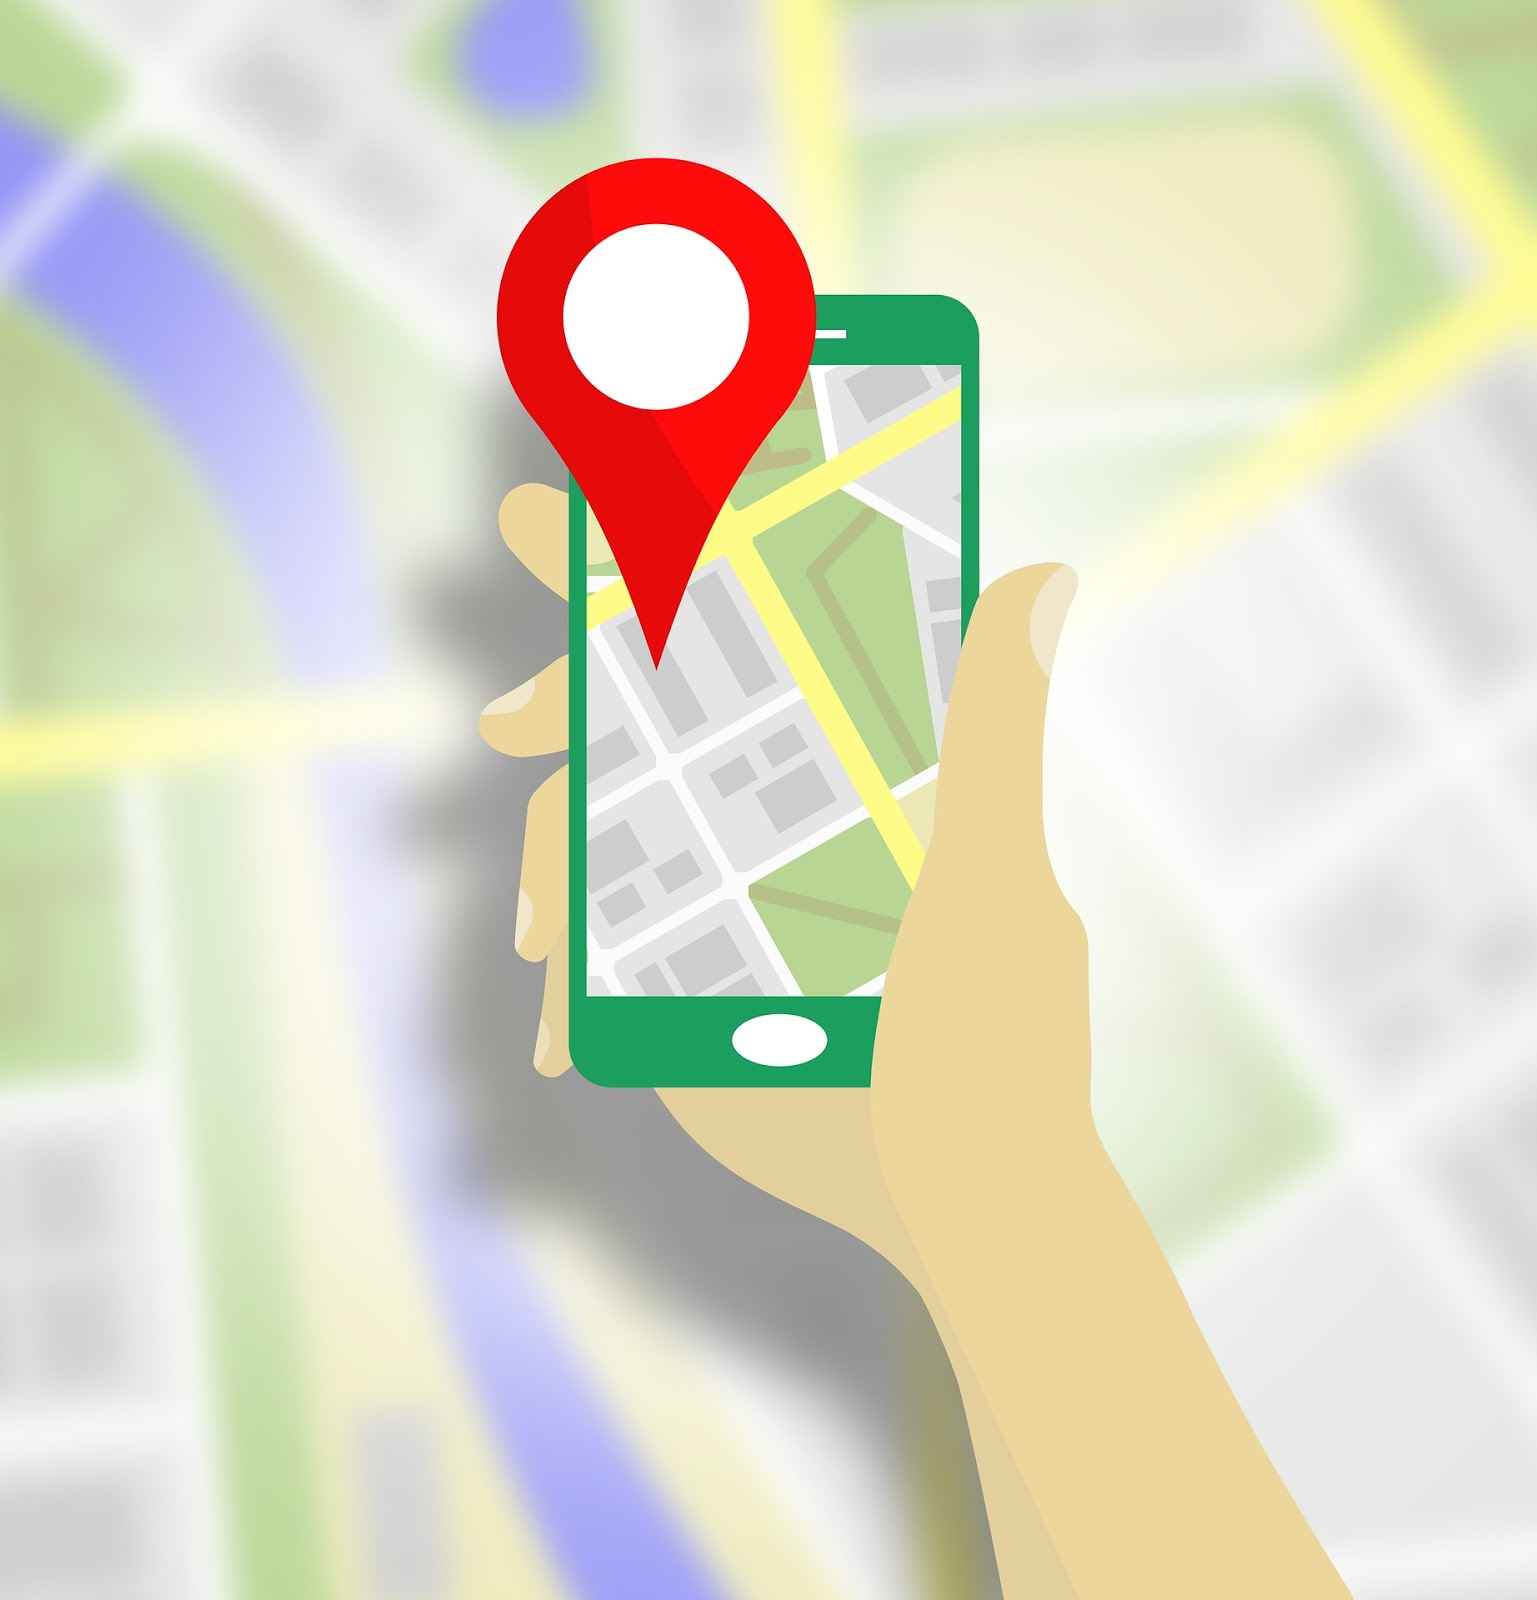 Working of Google Live traffic Maps on